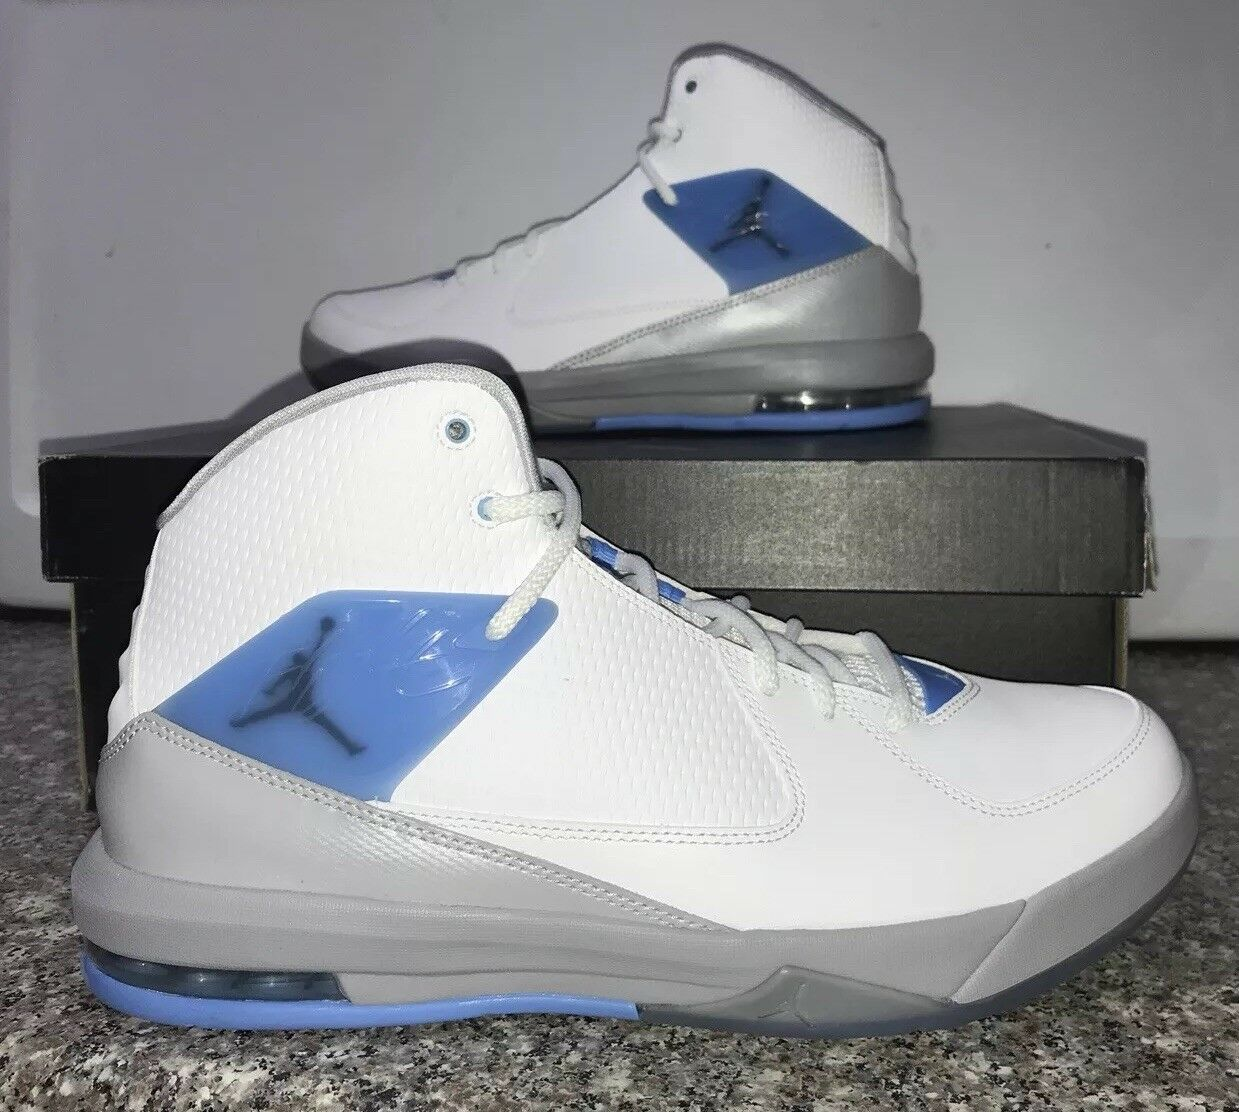 Air Jordan flight Incline White/Wolf Grey/University Blue/Carolina 11 705796-106 Comfortable and good-looking